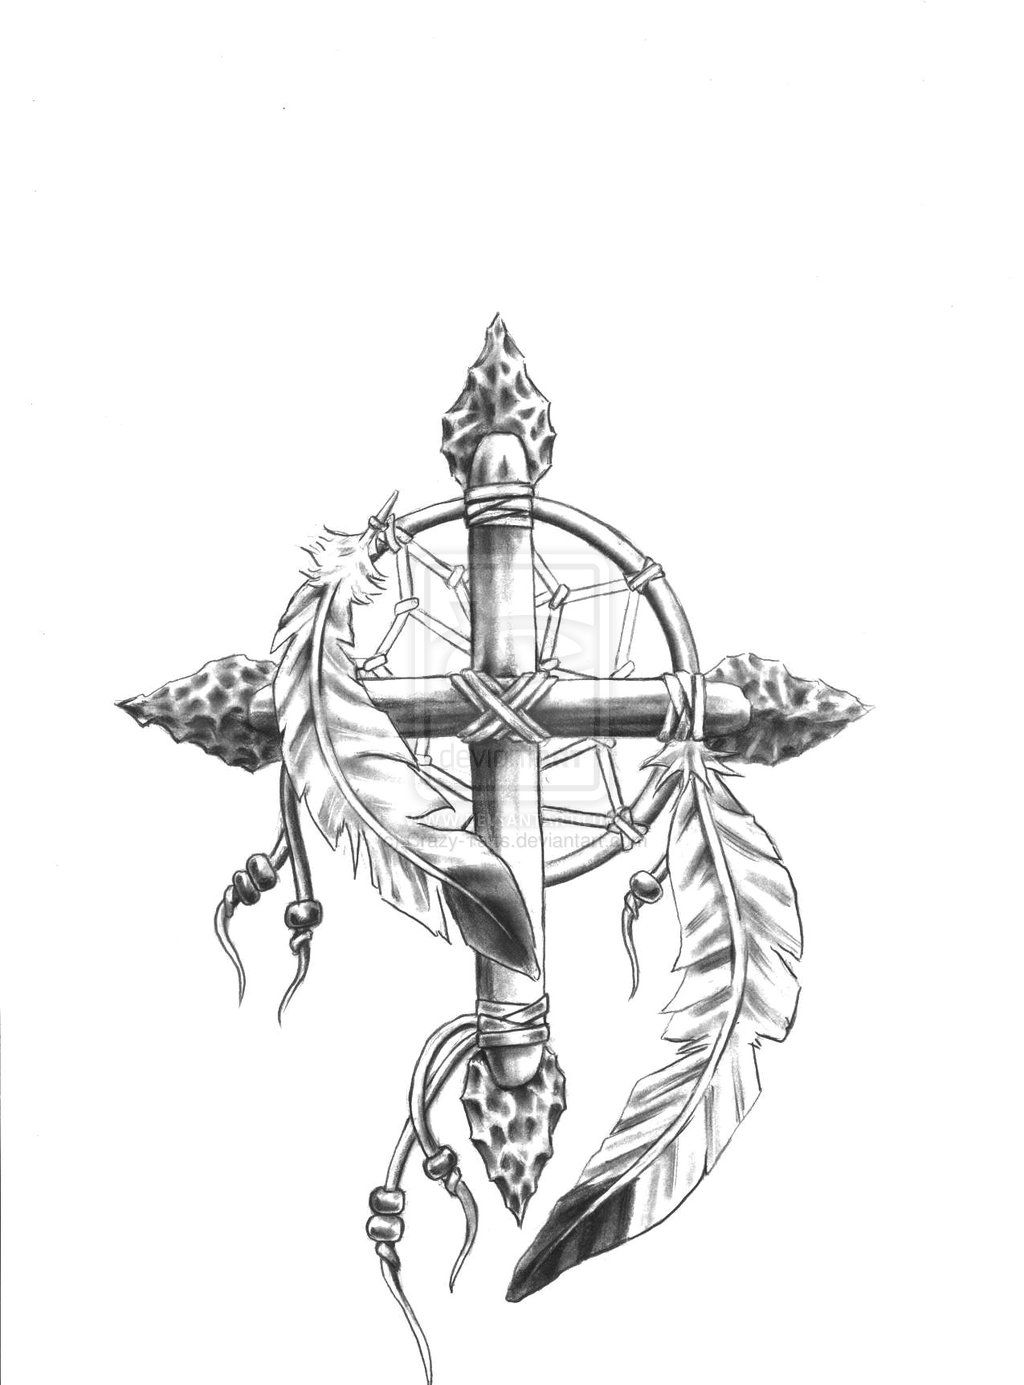 980809807075a Sketch for medicine wheel cross dream catcher comb by  Crazy-Tatts.deviantart.com on @deviantART I think this is so pretty